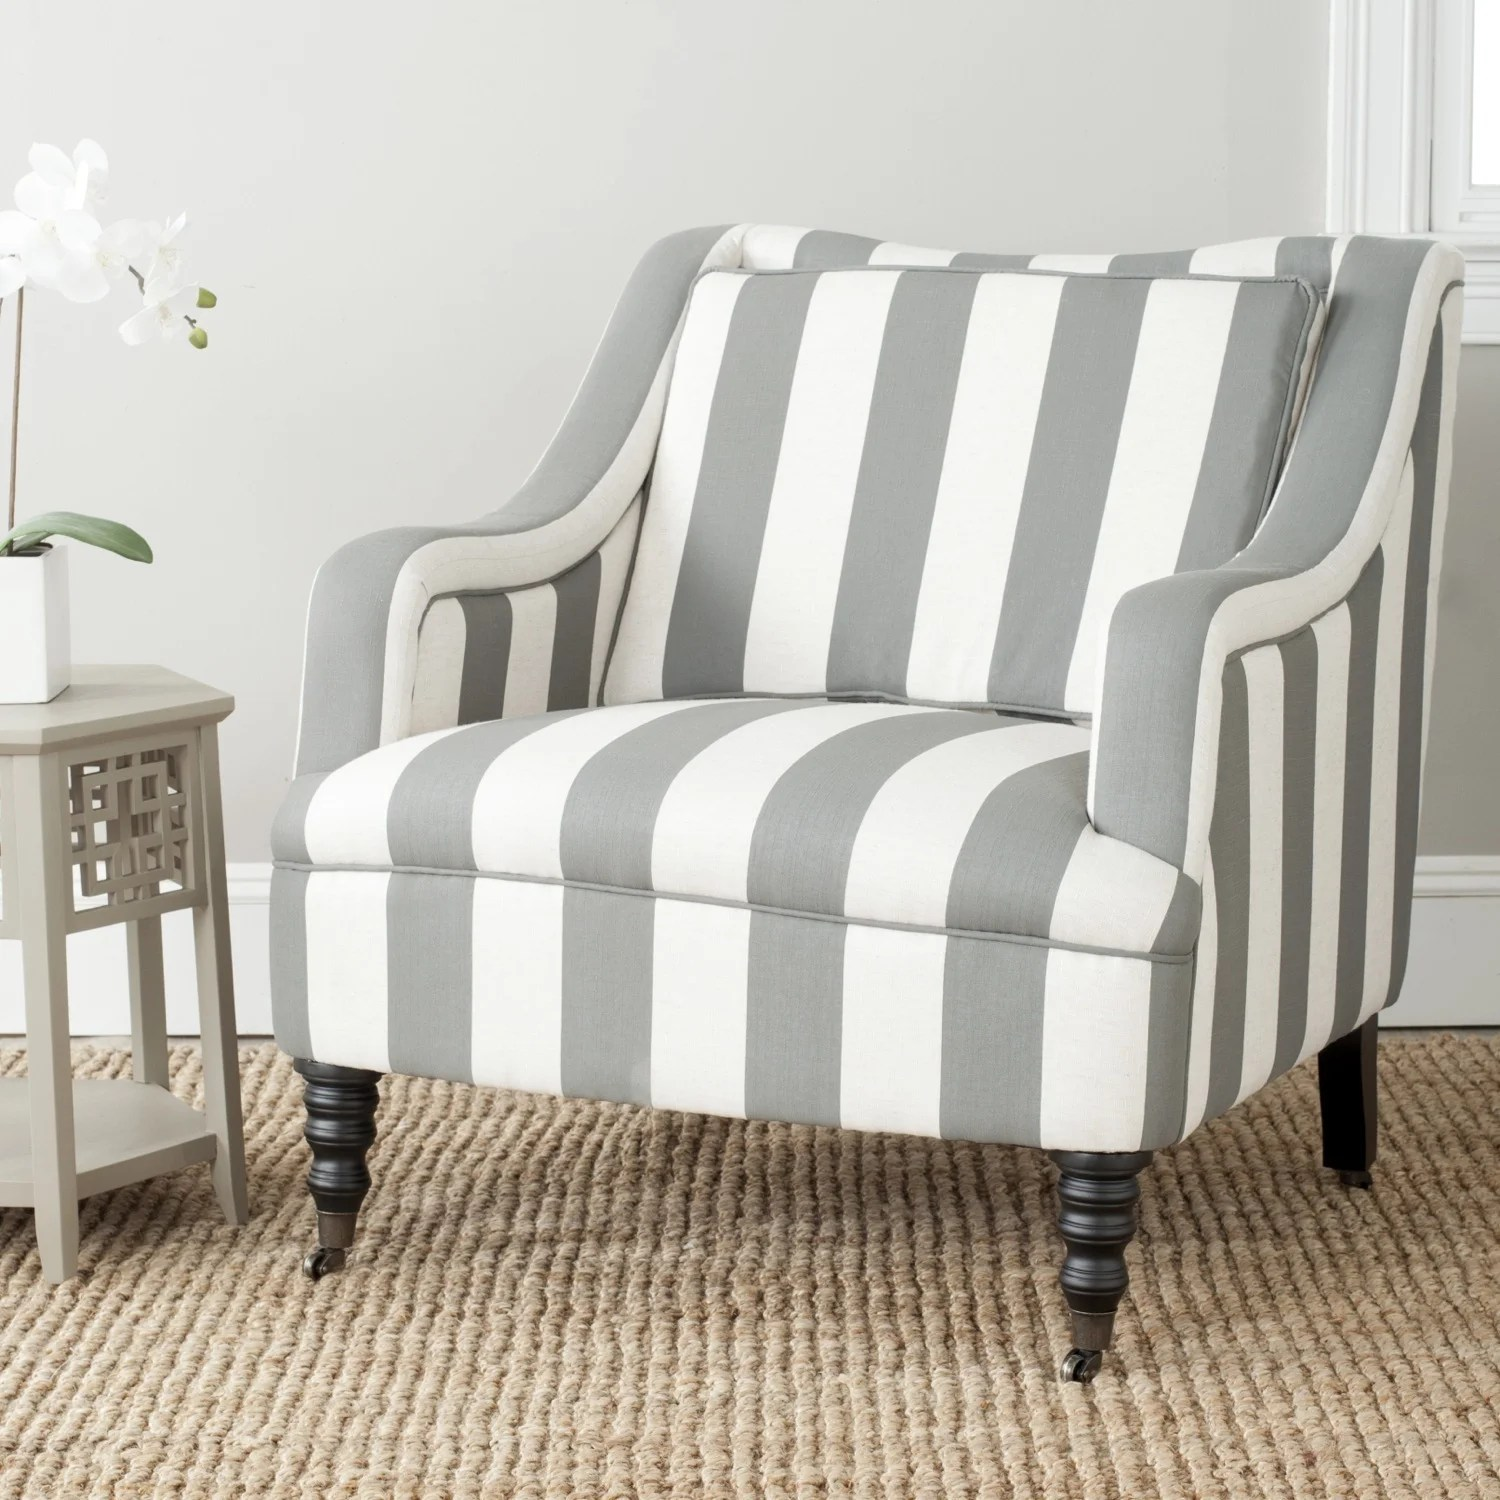 blue and white striped chair diy covers for birthday party shop safavieh homer greyish stripe arm on sale